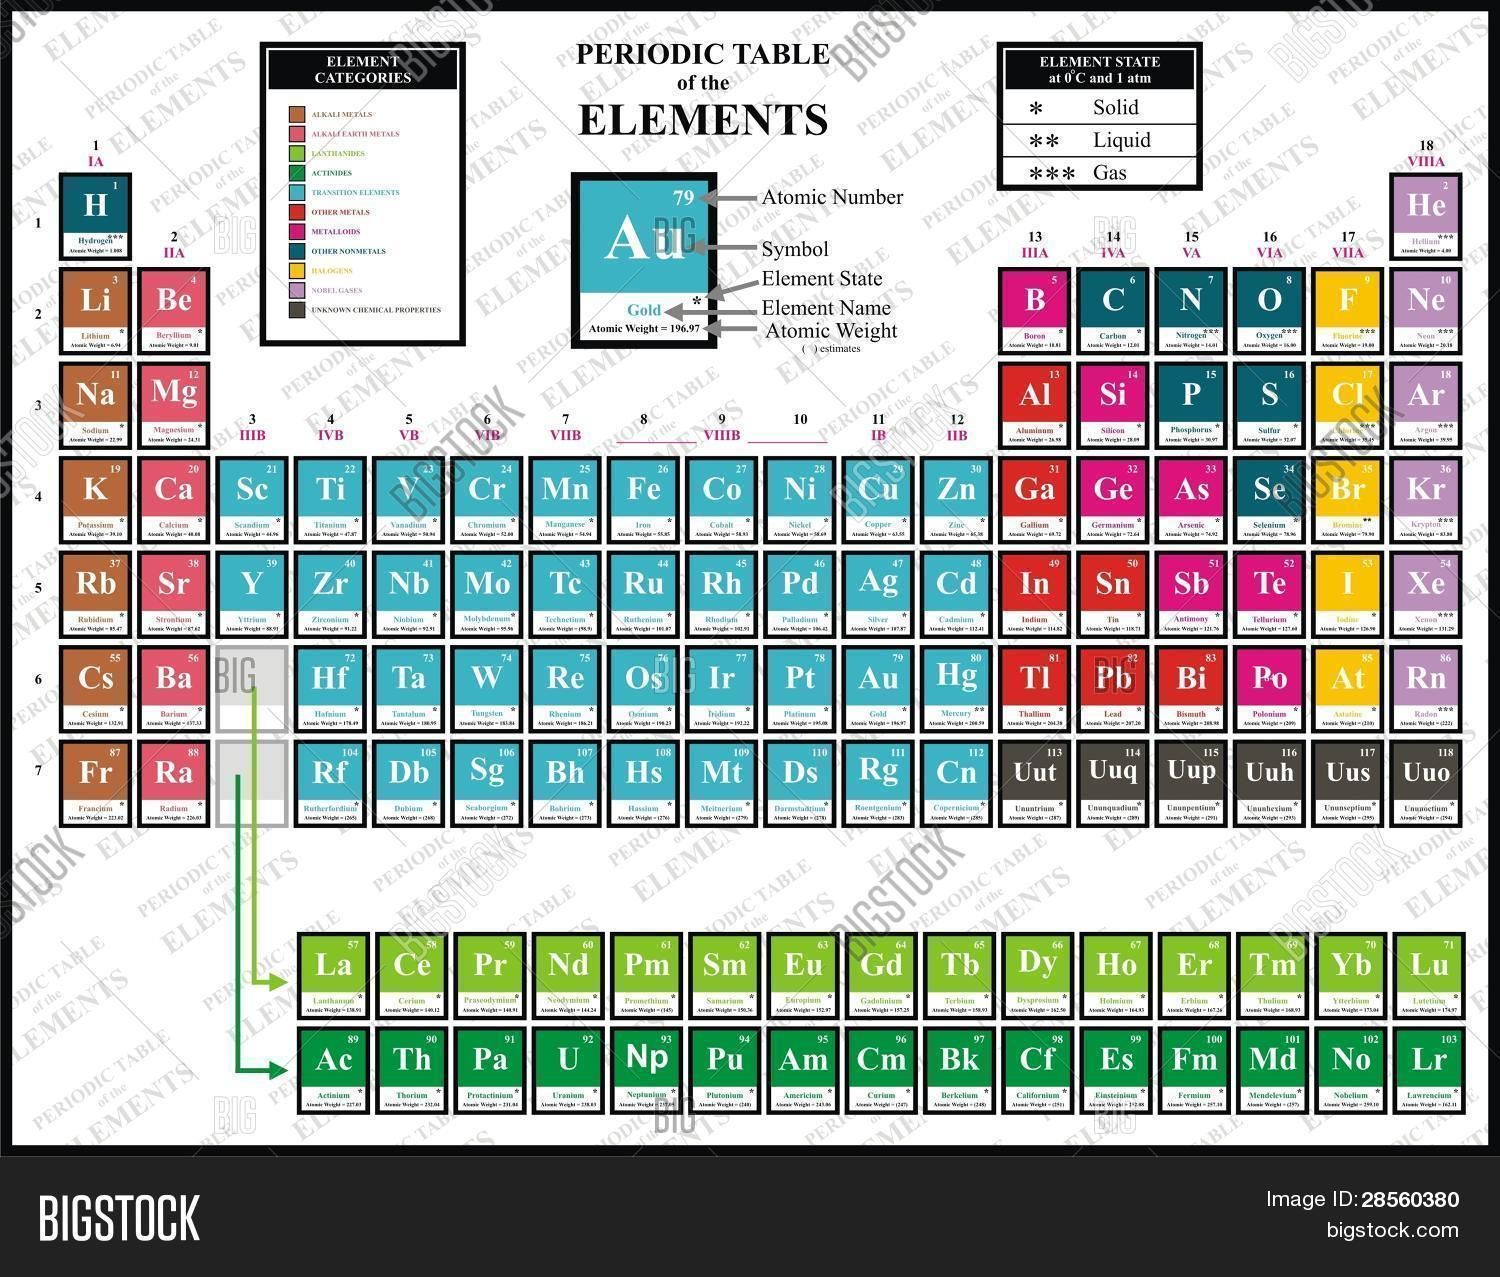 Colorful periodic image photo free trial bigstock colorful periodic table of the chemical elements including element name atomic number atomic urtaz